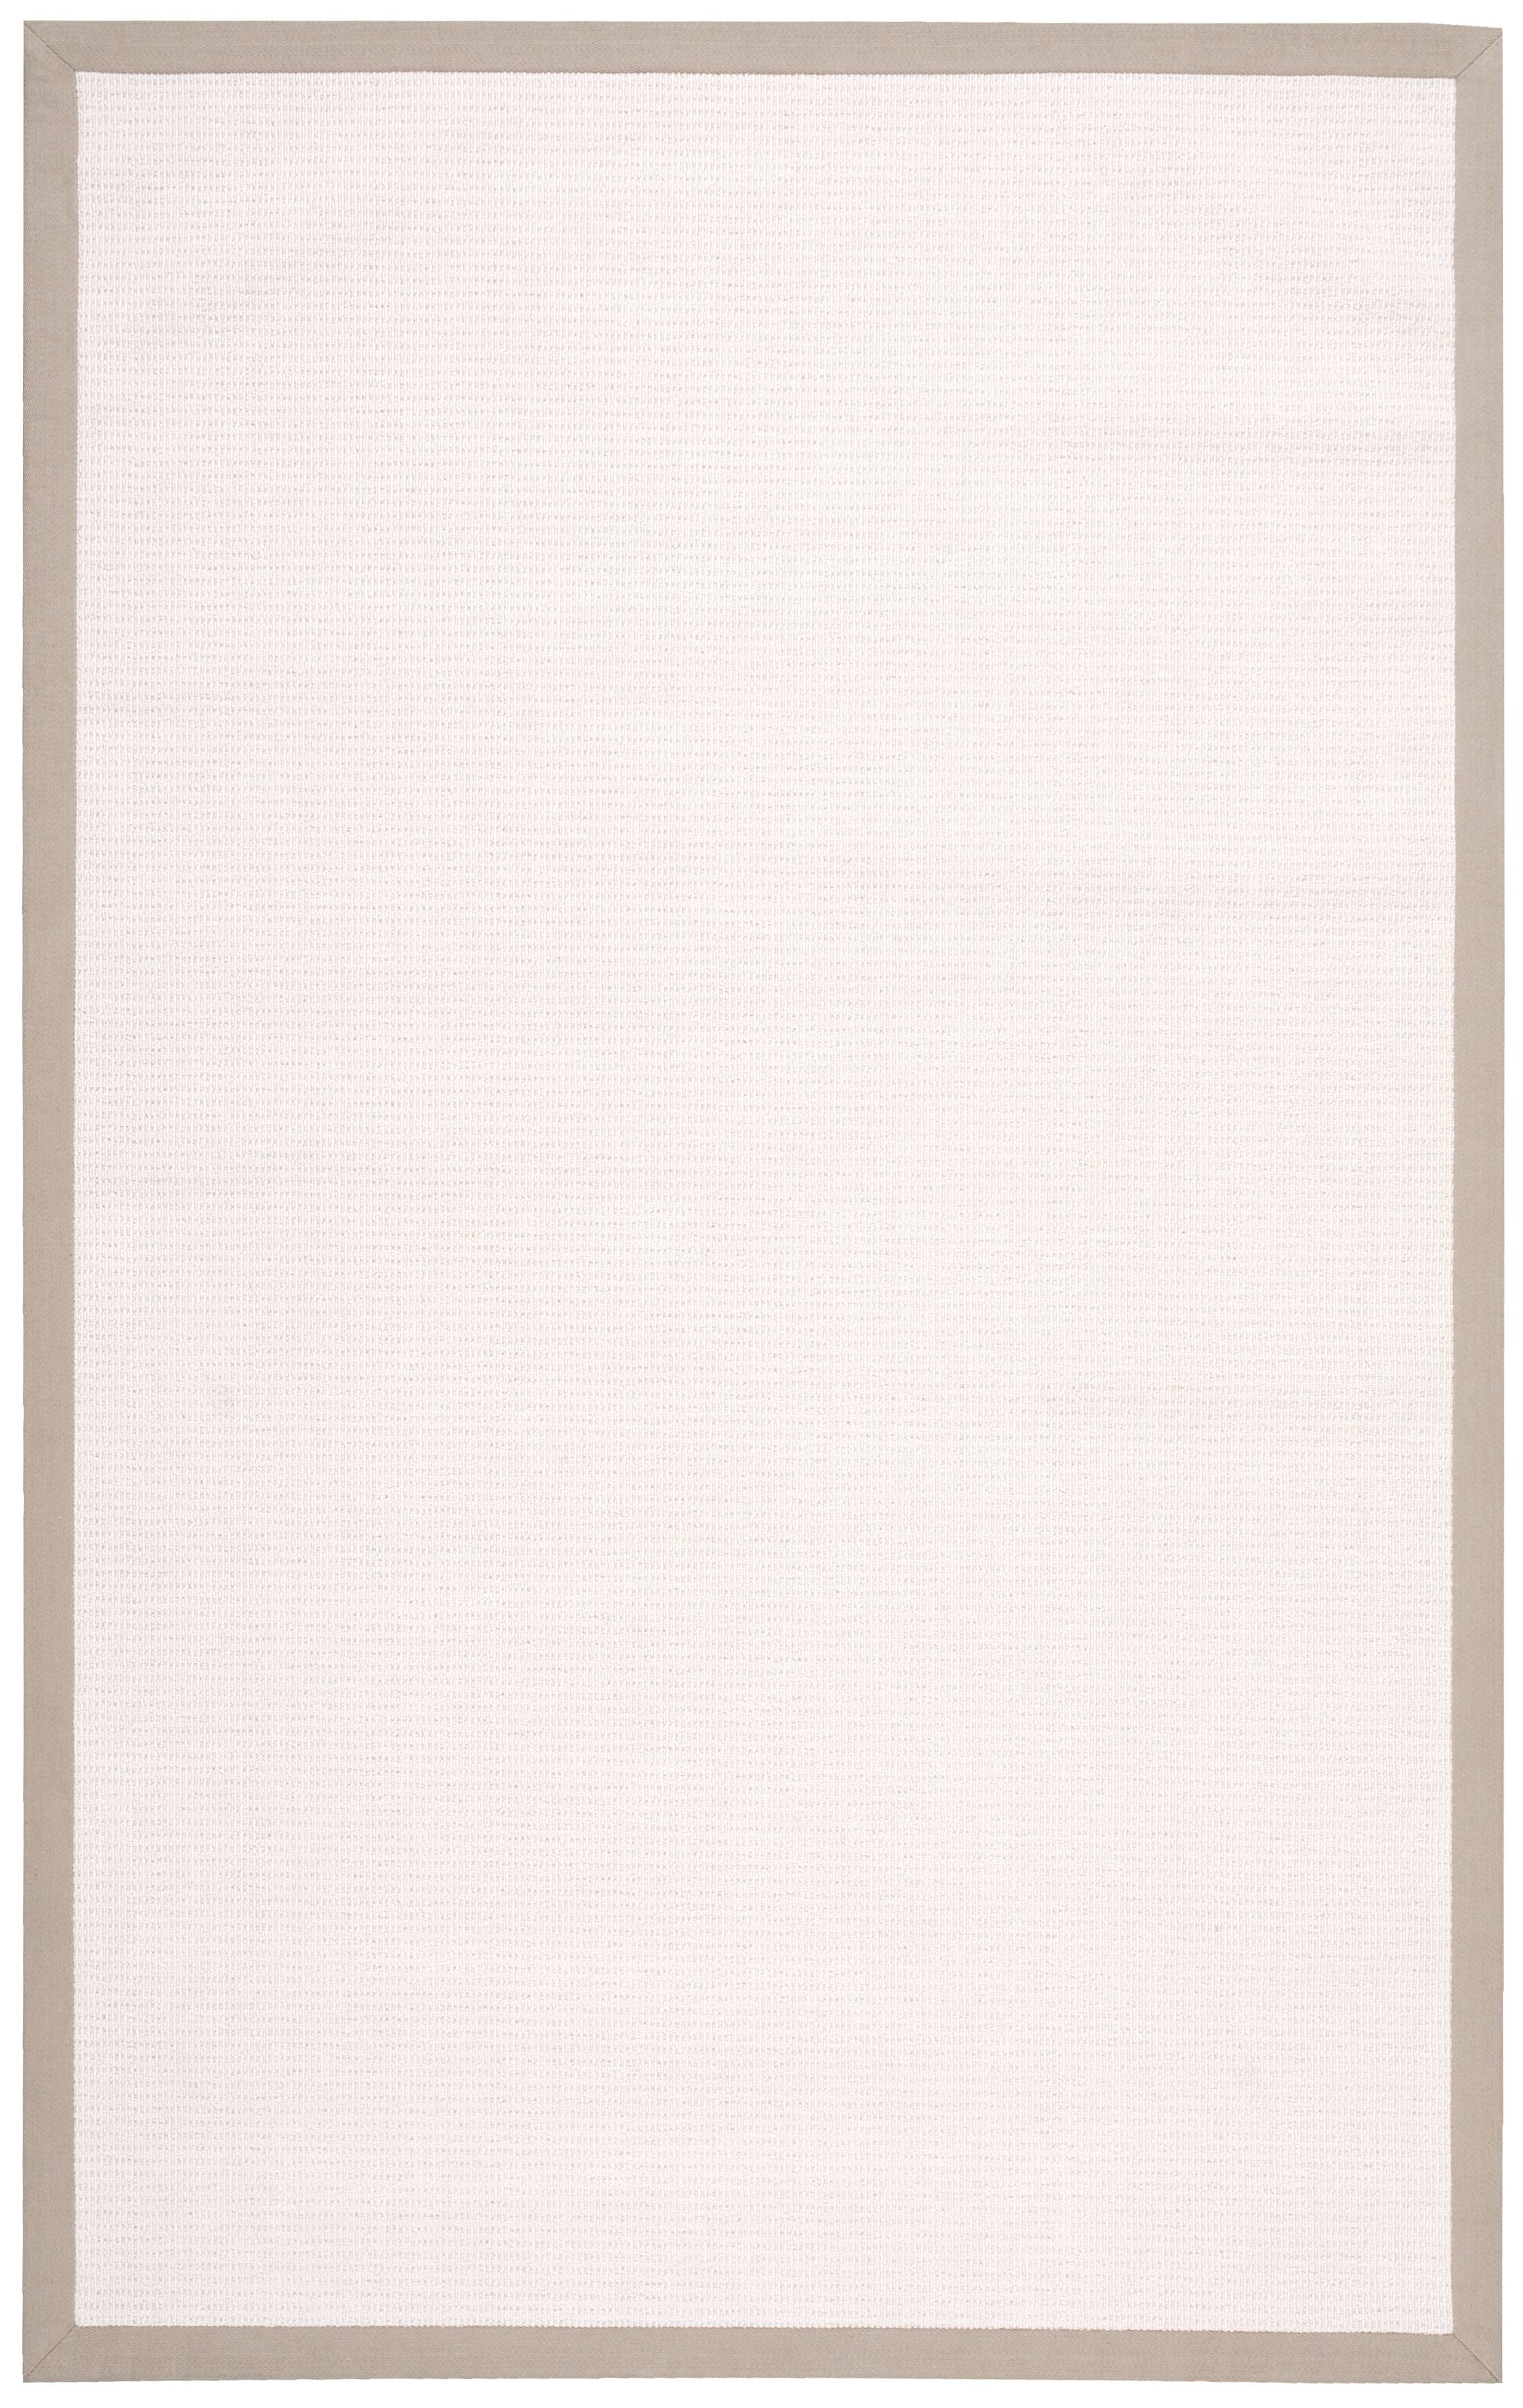 Newland Blanc Area Rug Rug Size: Rectangle 9' x 13'2